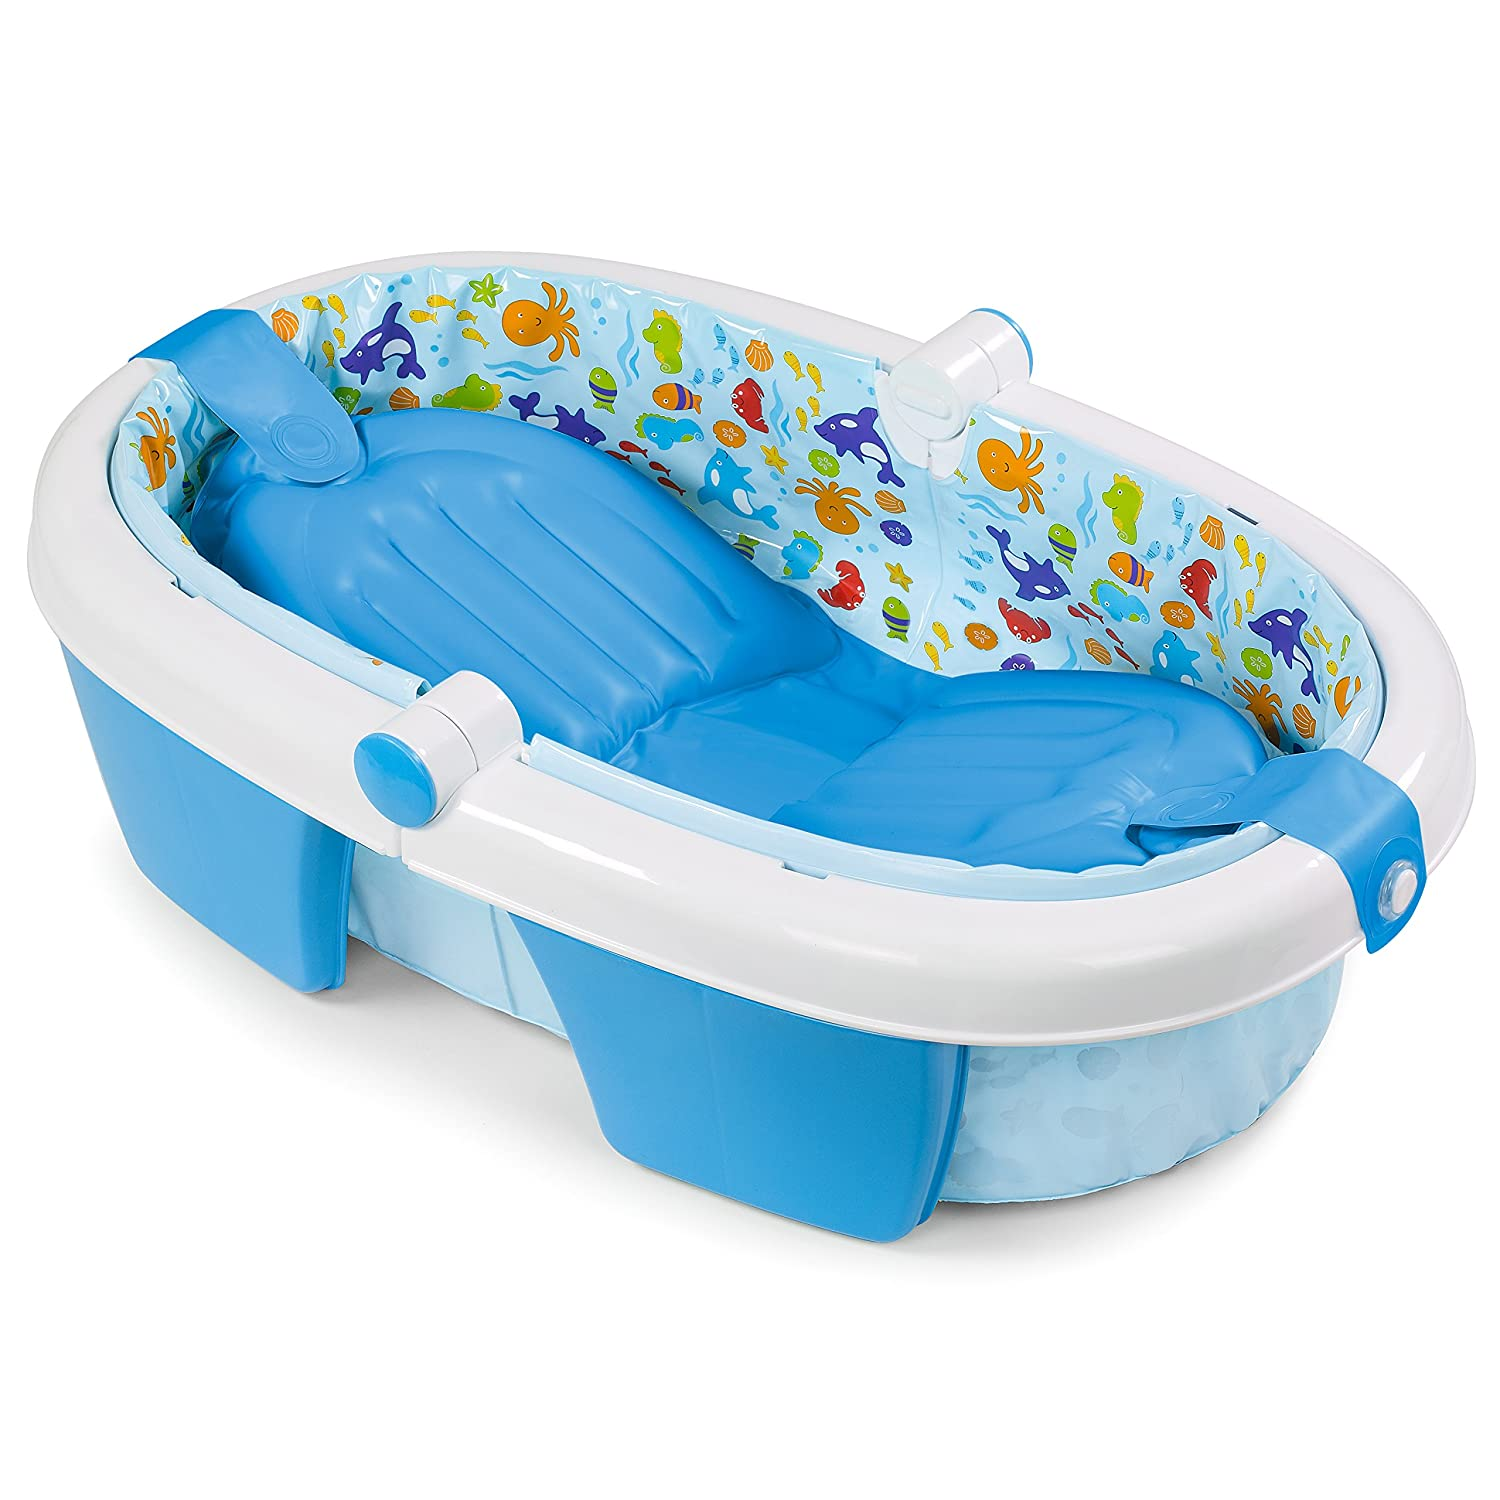 Amazon.com : Summer Infant Fold Away Baby Bath : Baby